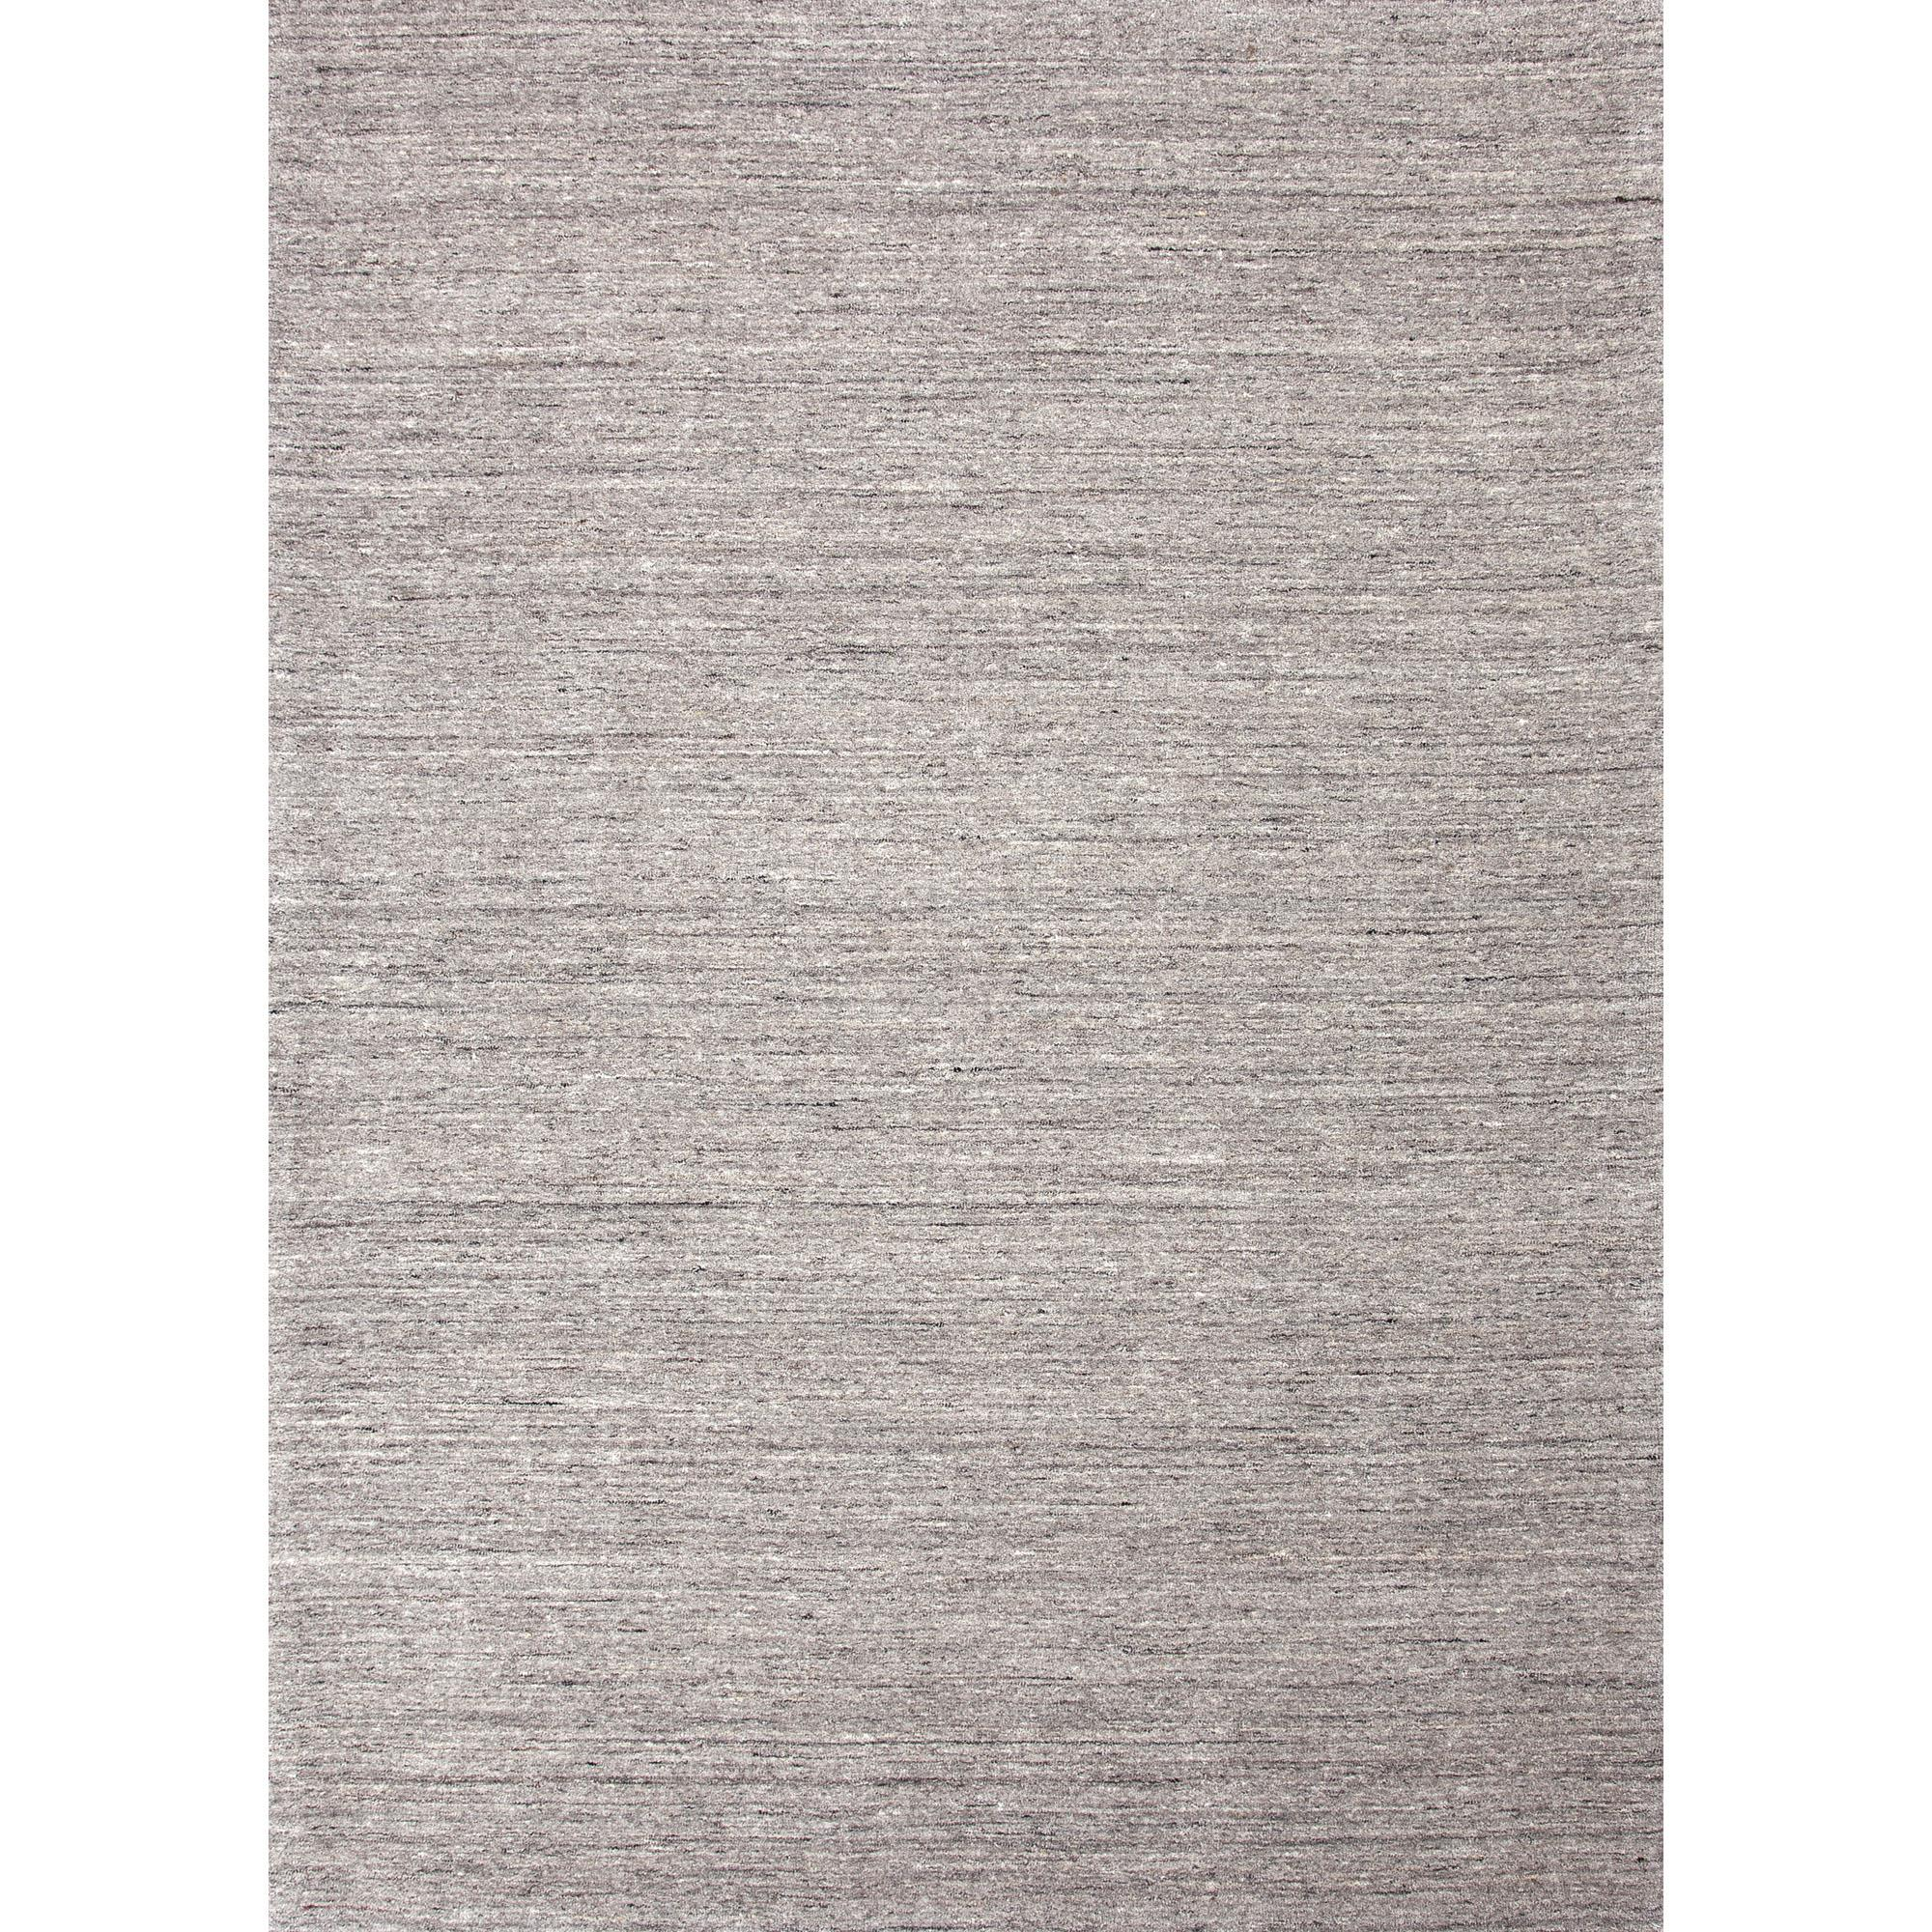 Elements 2 x 3 Rug by JAIPUR Living at Malouf Furniture Co.